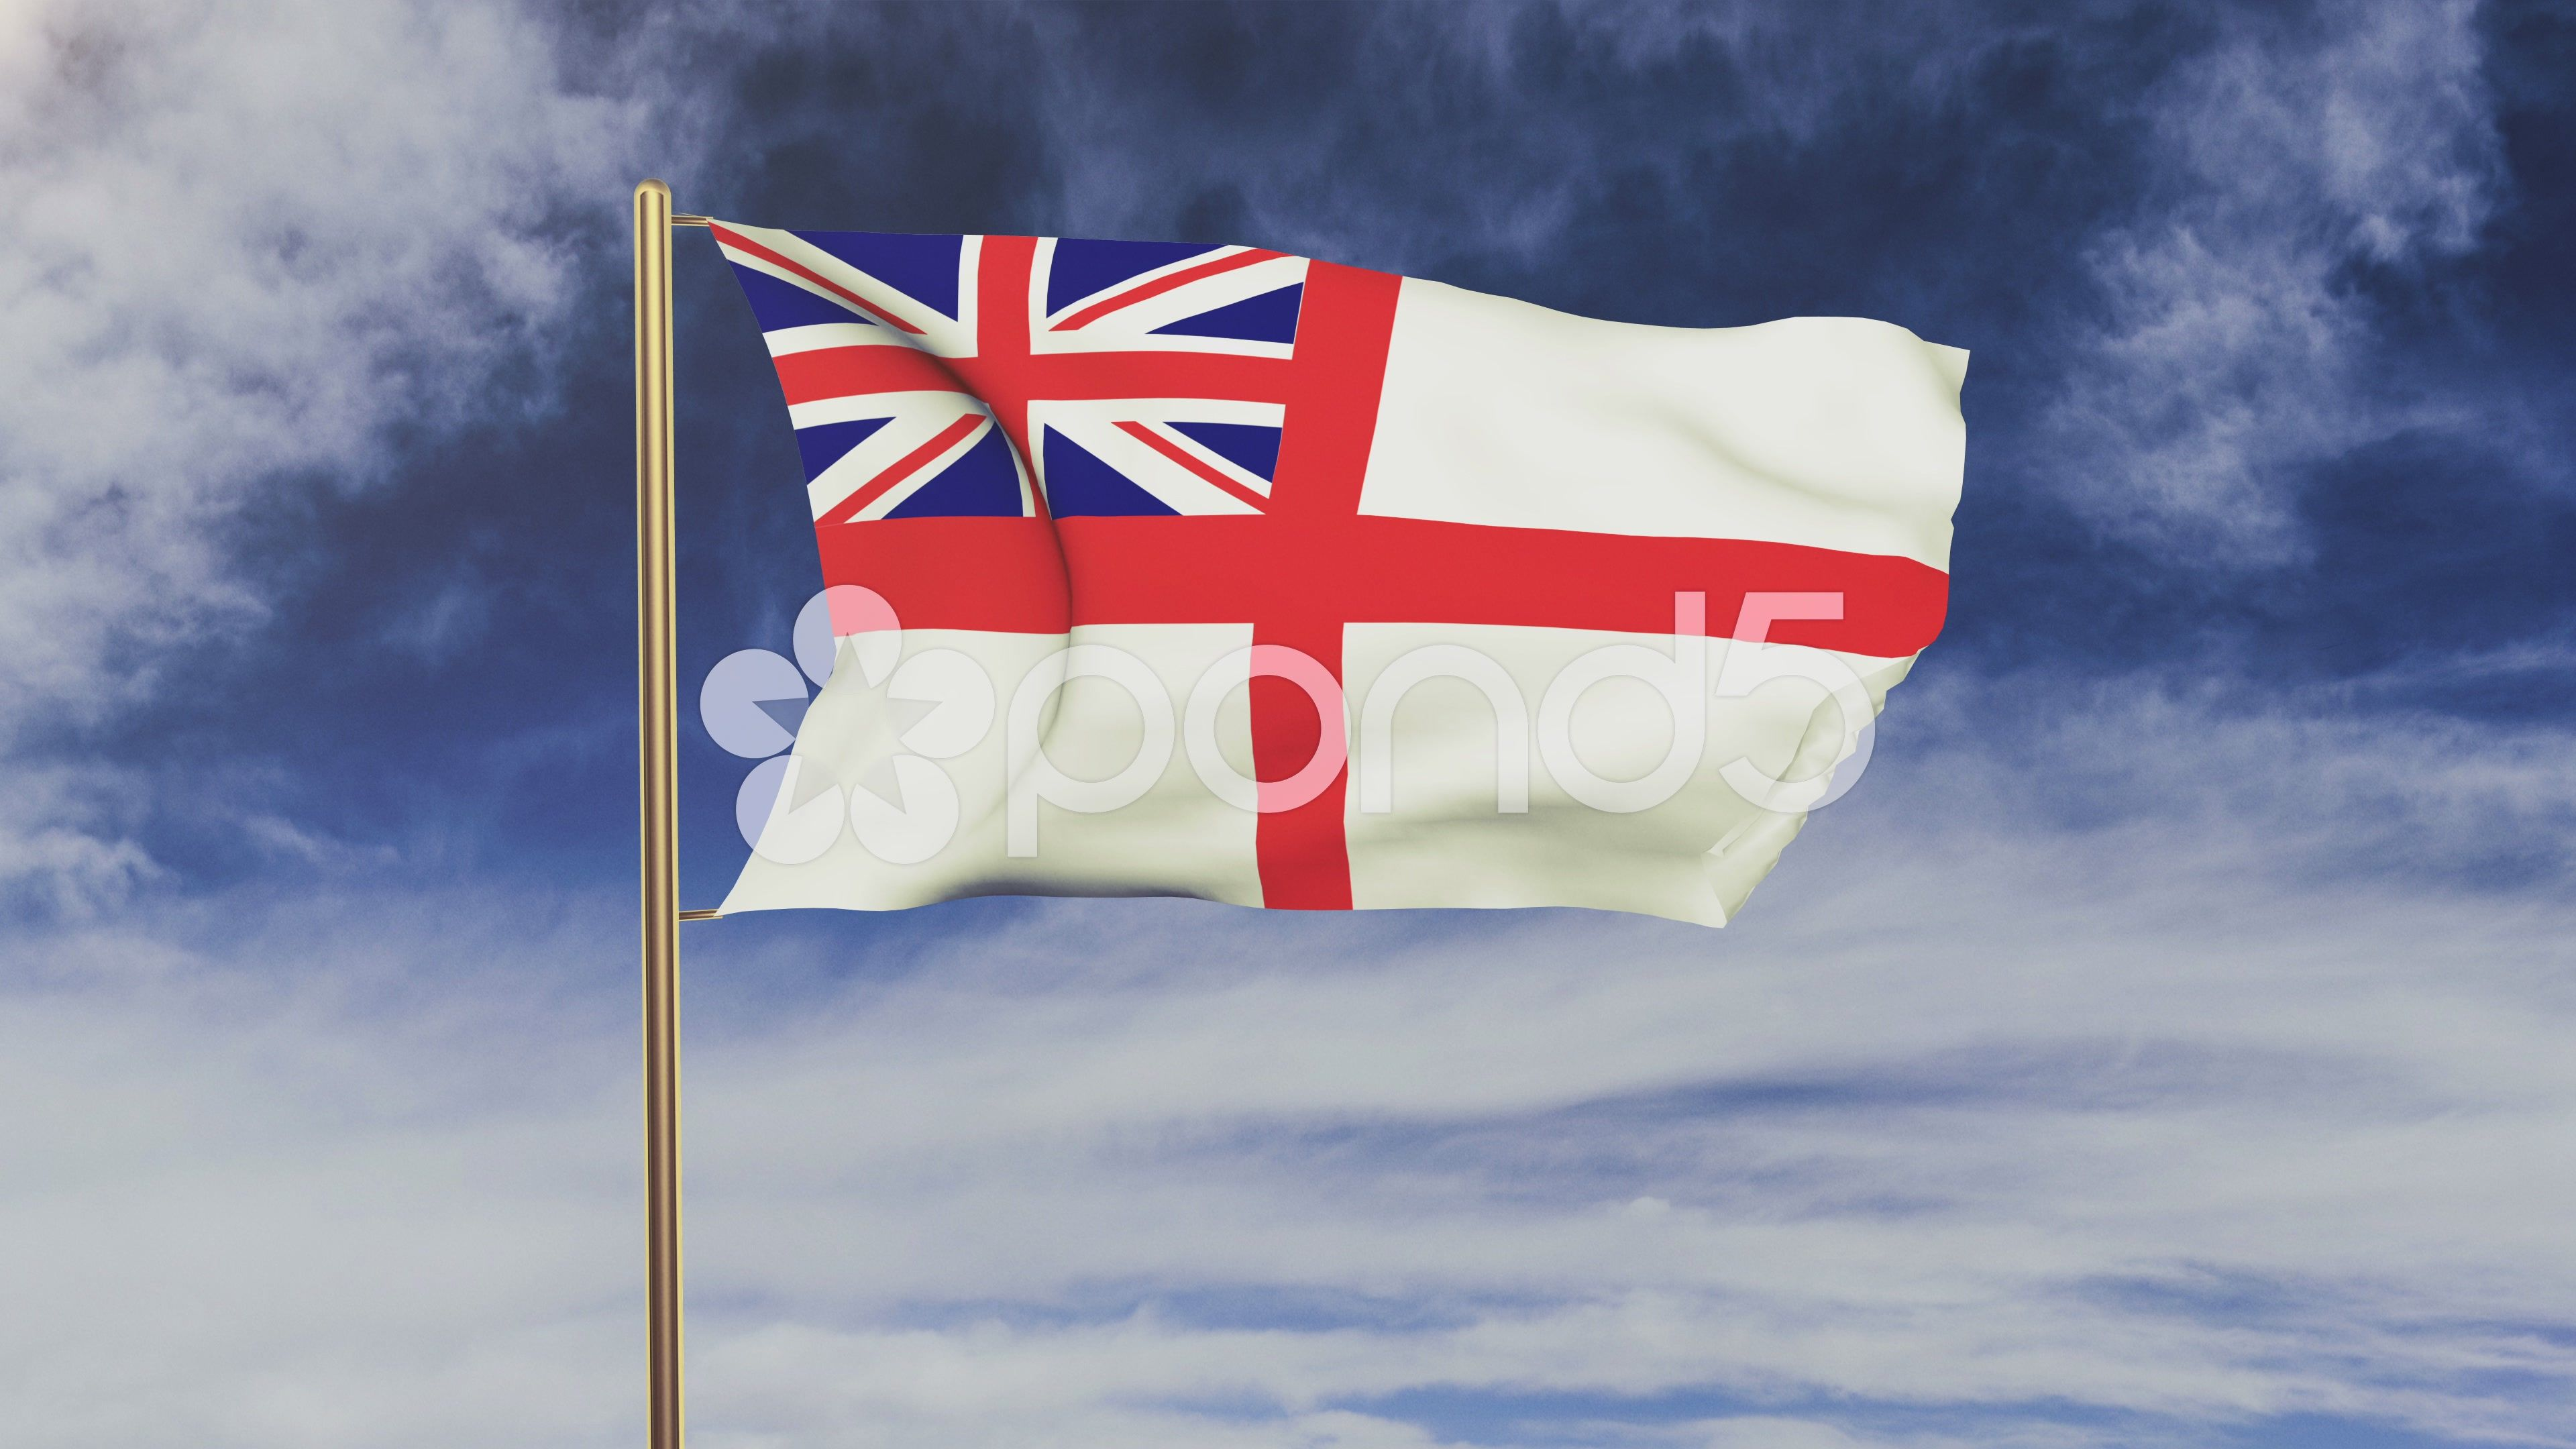 Royal Navy Flag Waving In The Wind Green Screen Alpha Matte Loopable Stock Footage Ad Waving Wind Royal Green In 2020 Navy Flag Royal Navy Greenscreen